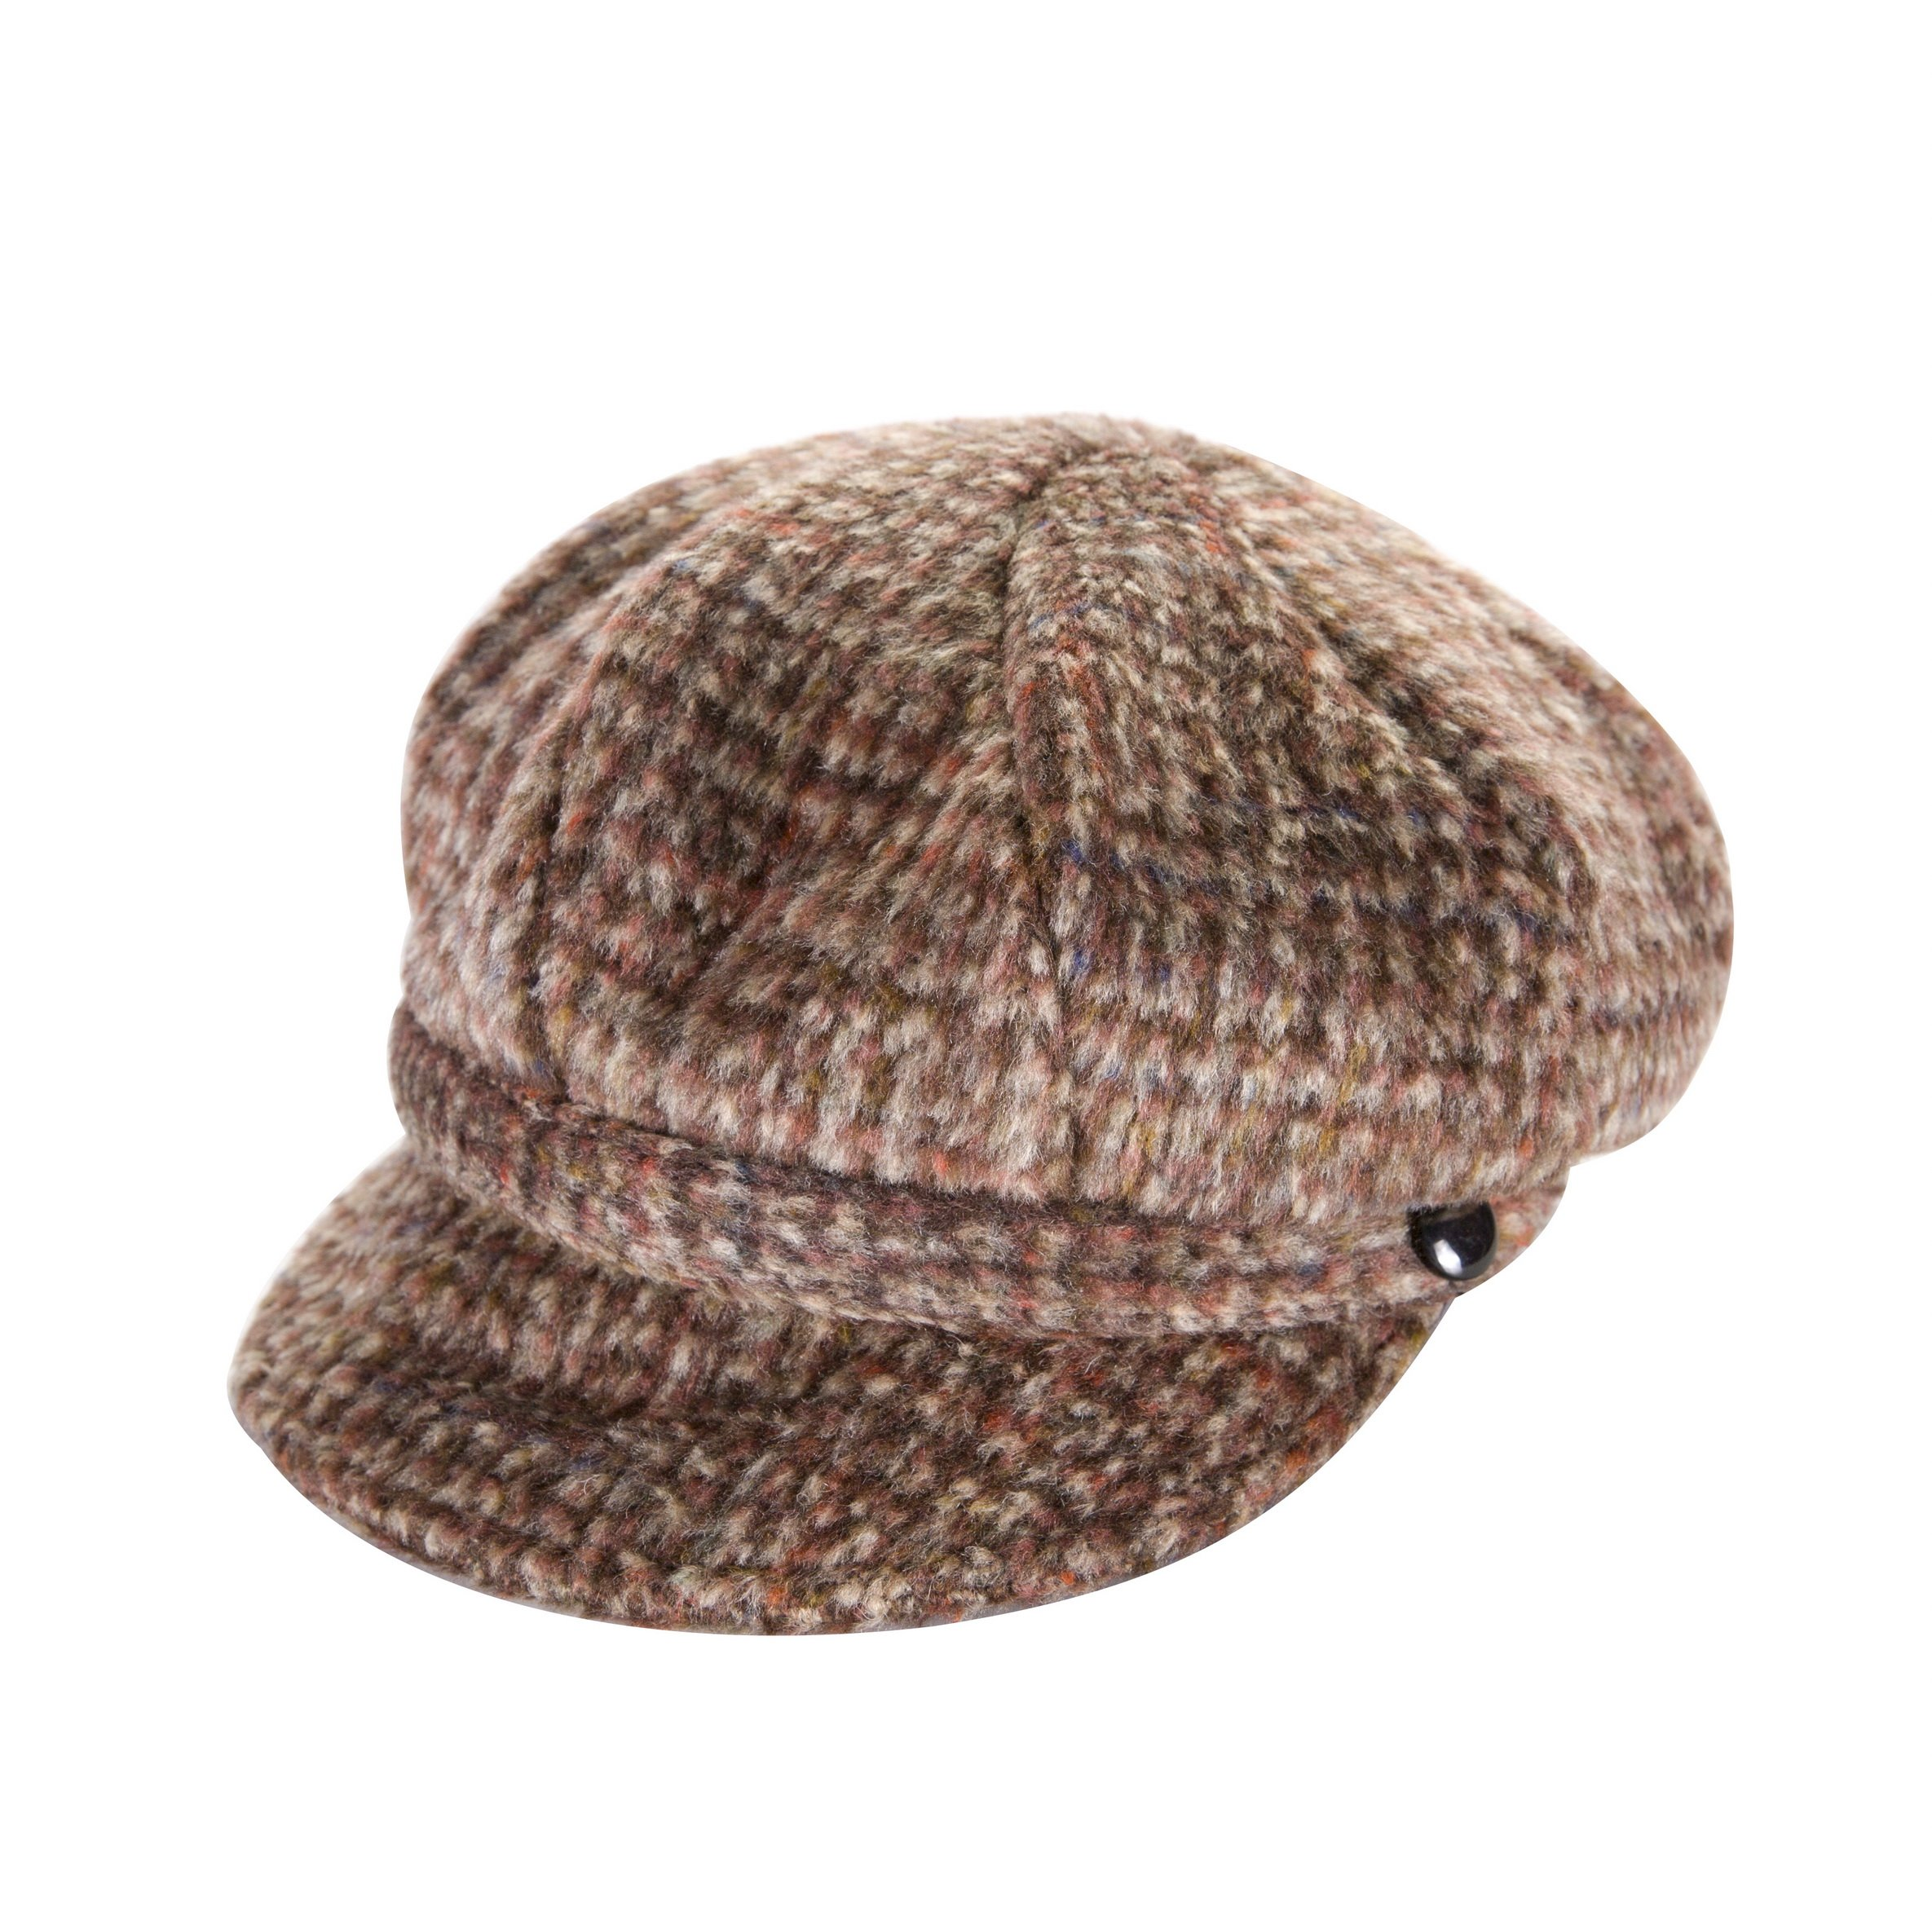 Heritage Traditions Womens Tweed Wool Peaked Newsboy Cap Hat (Brown) by Heritage Traditions